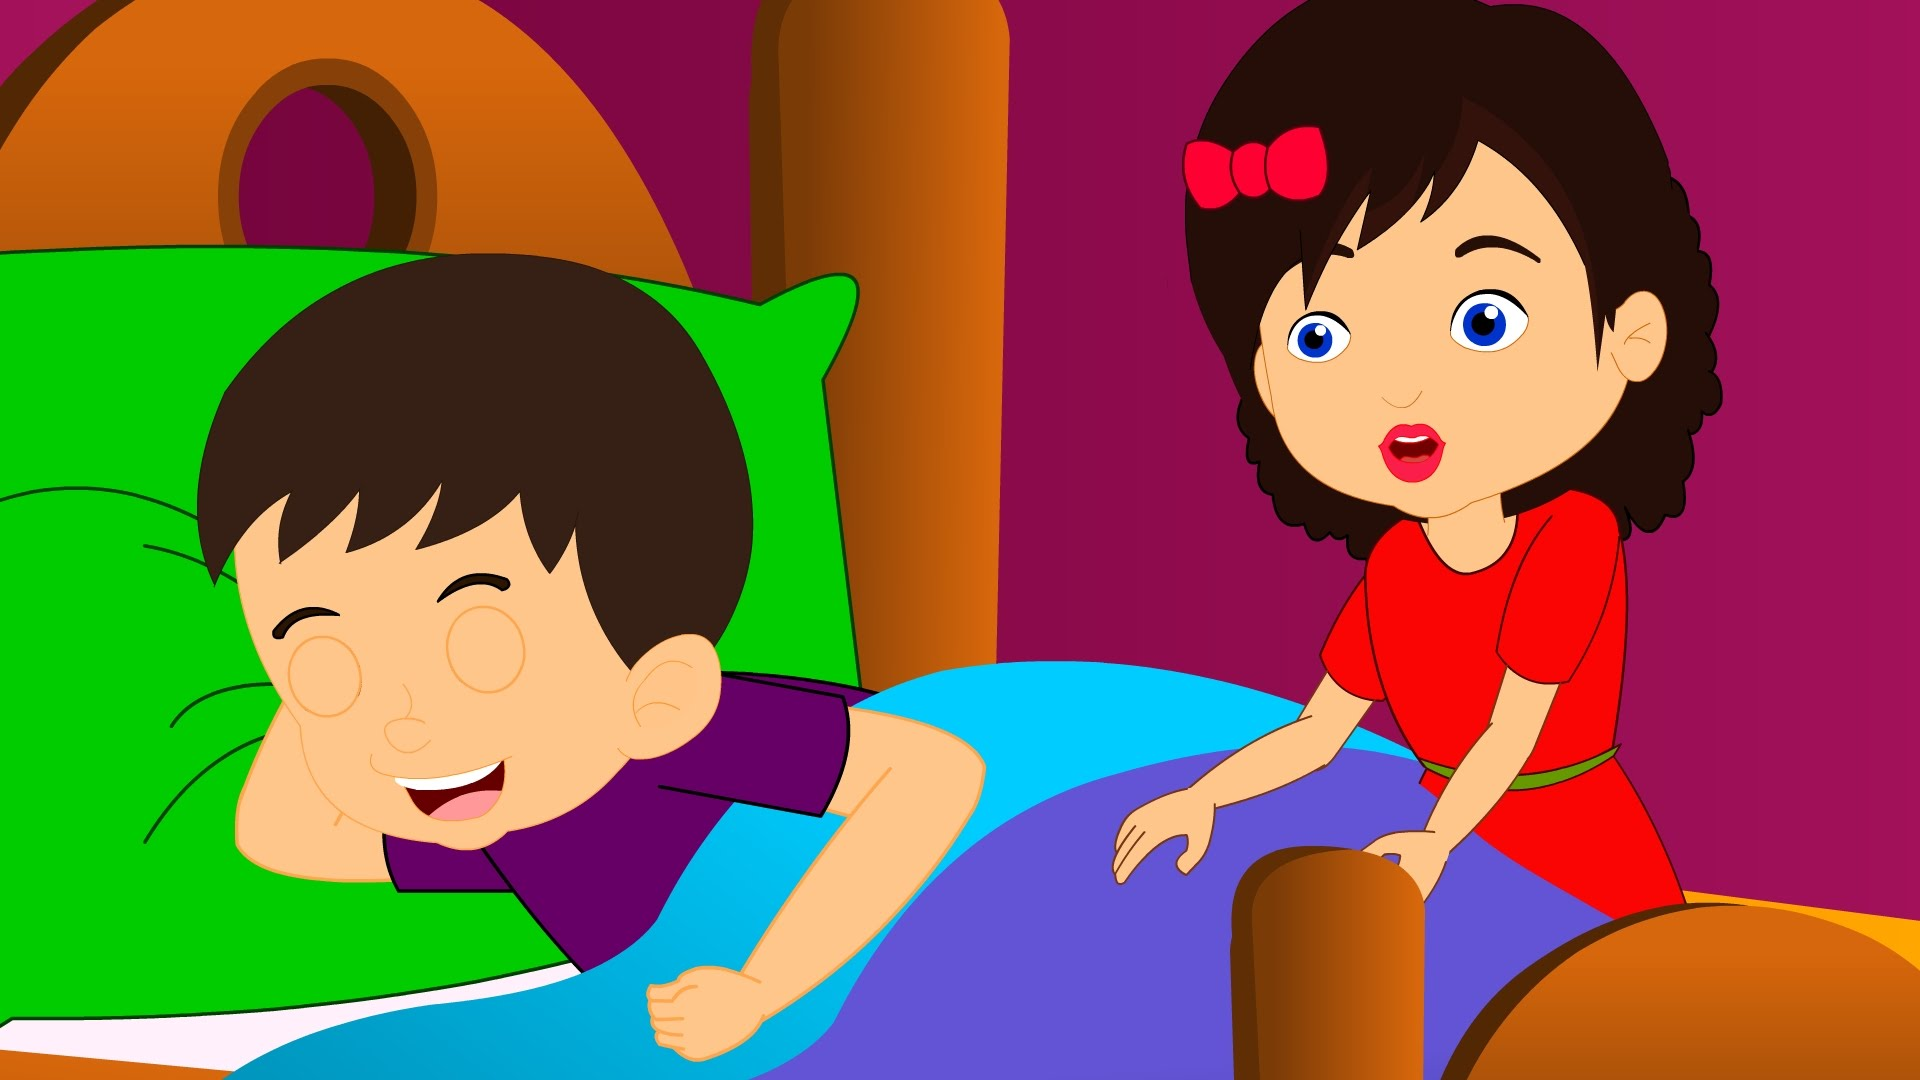 Are you sleeping john. Brother clipart animated